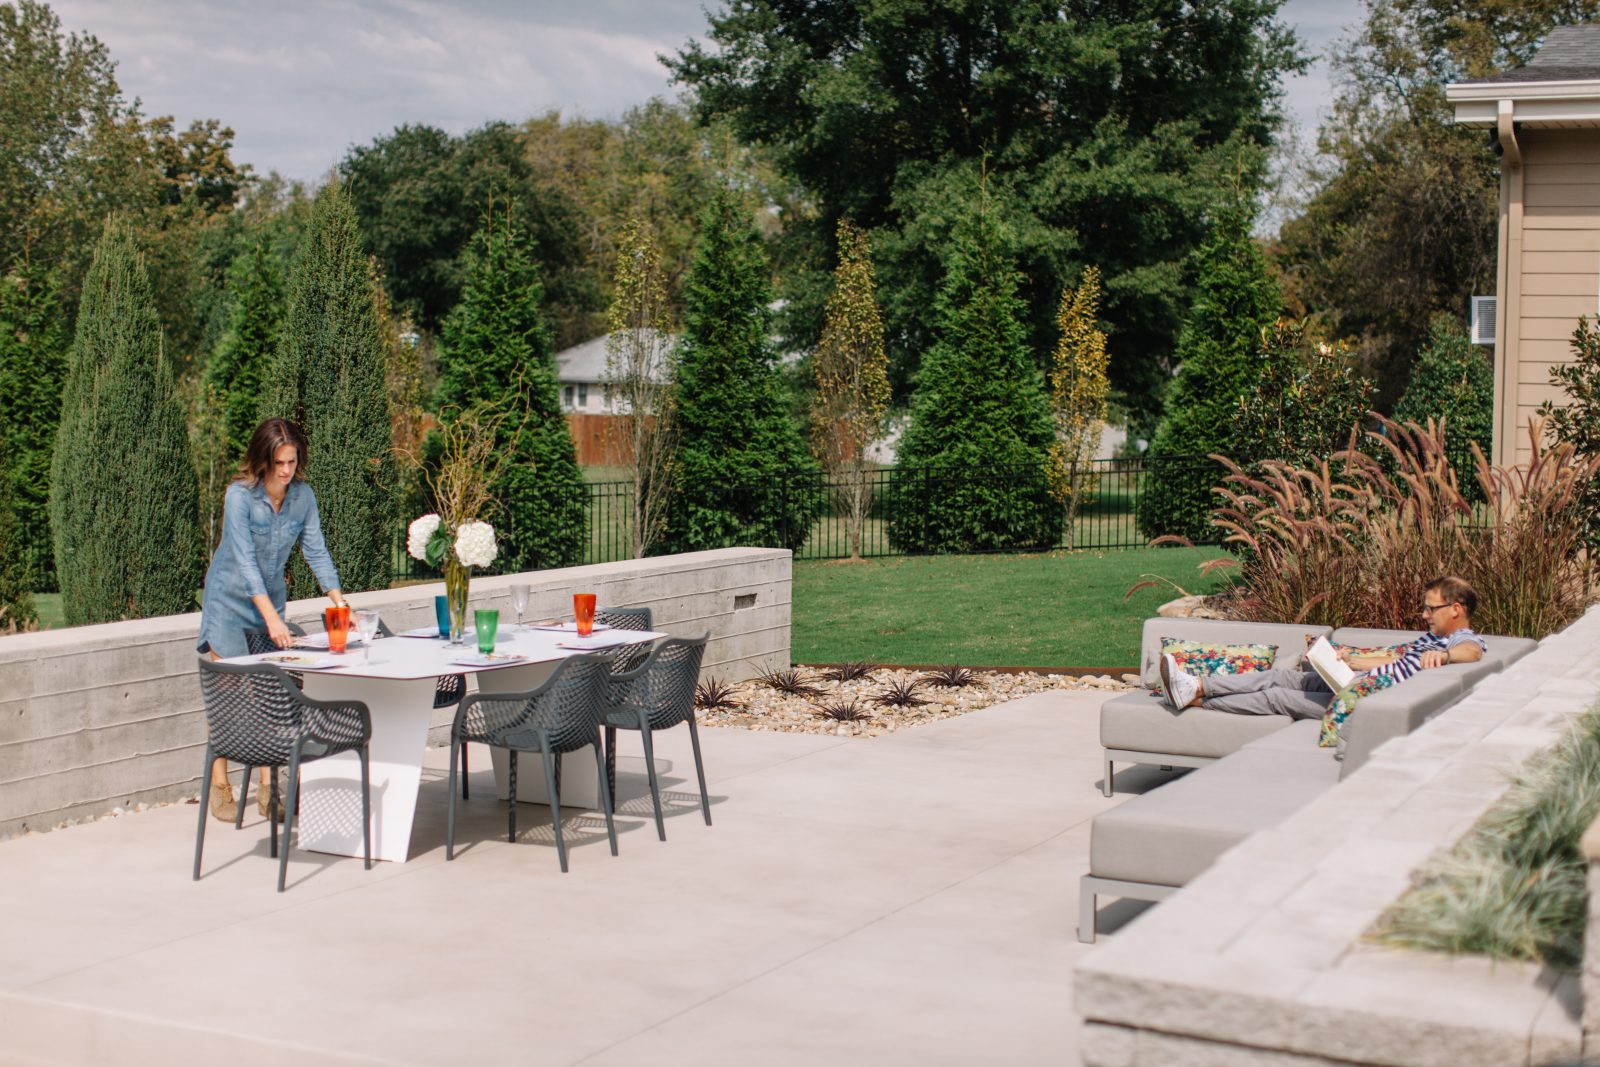 outdoor furniture makes for great entertaining and relaxing